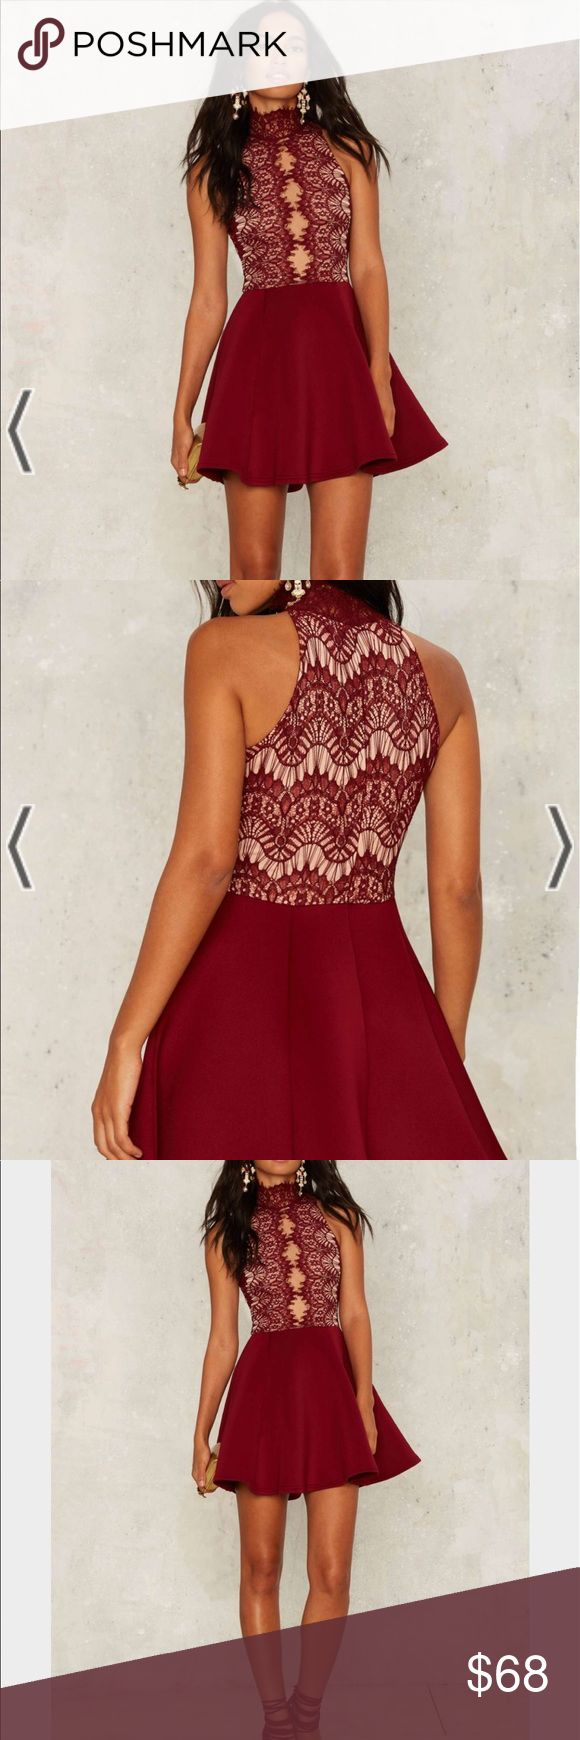 Rare London Hold Court Lace Dress Command attention. The Hold Court Dress is burgundy and features a scuba skirt, lace bodice, mock neck, enclosed zipper at back, and partial nude lining. By Rare London. Nasty Gal Dresses